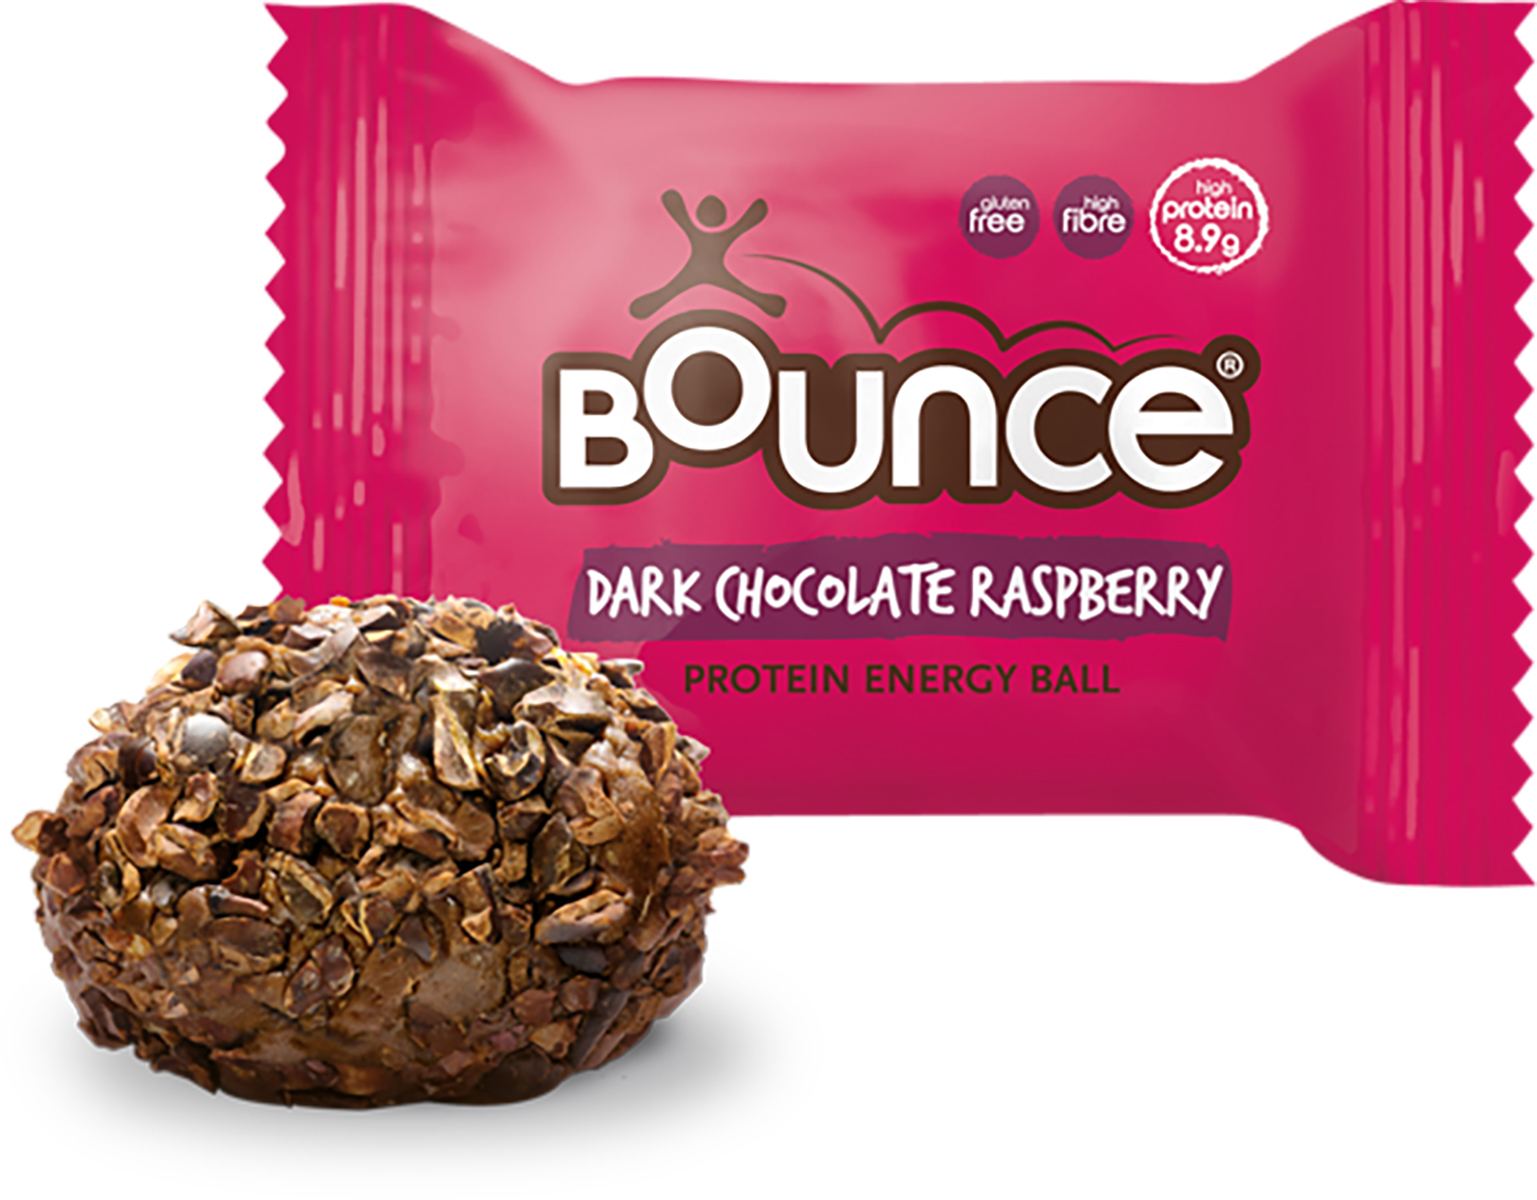 Bounce Protein Energy Ball (12 Pack)   item_misc